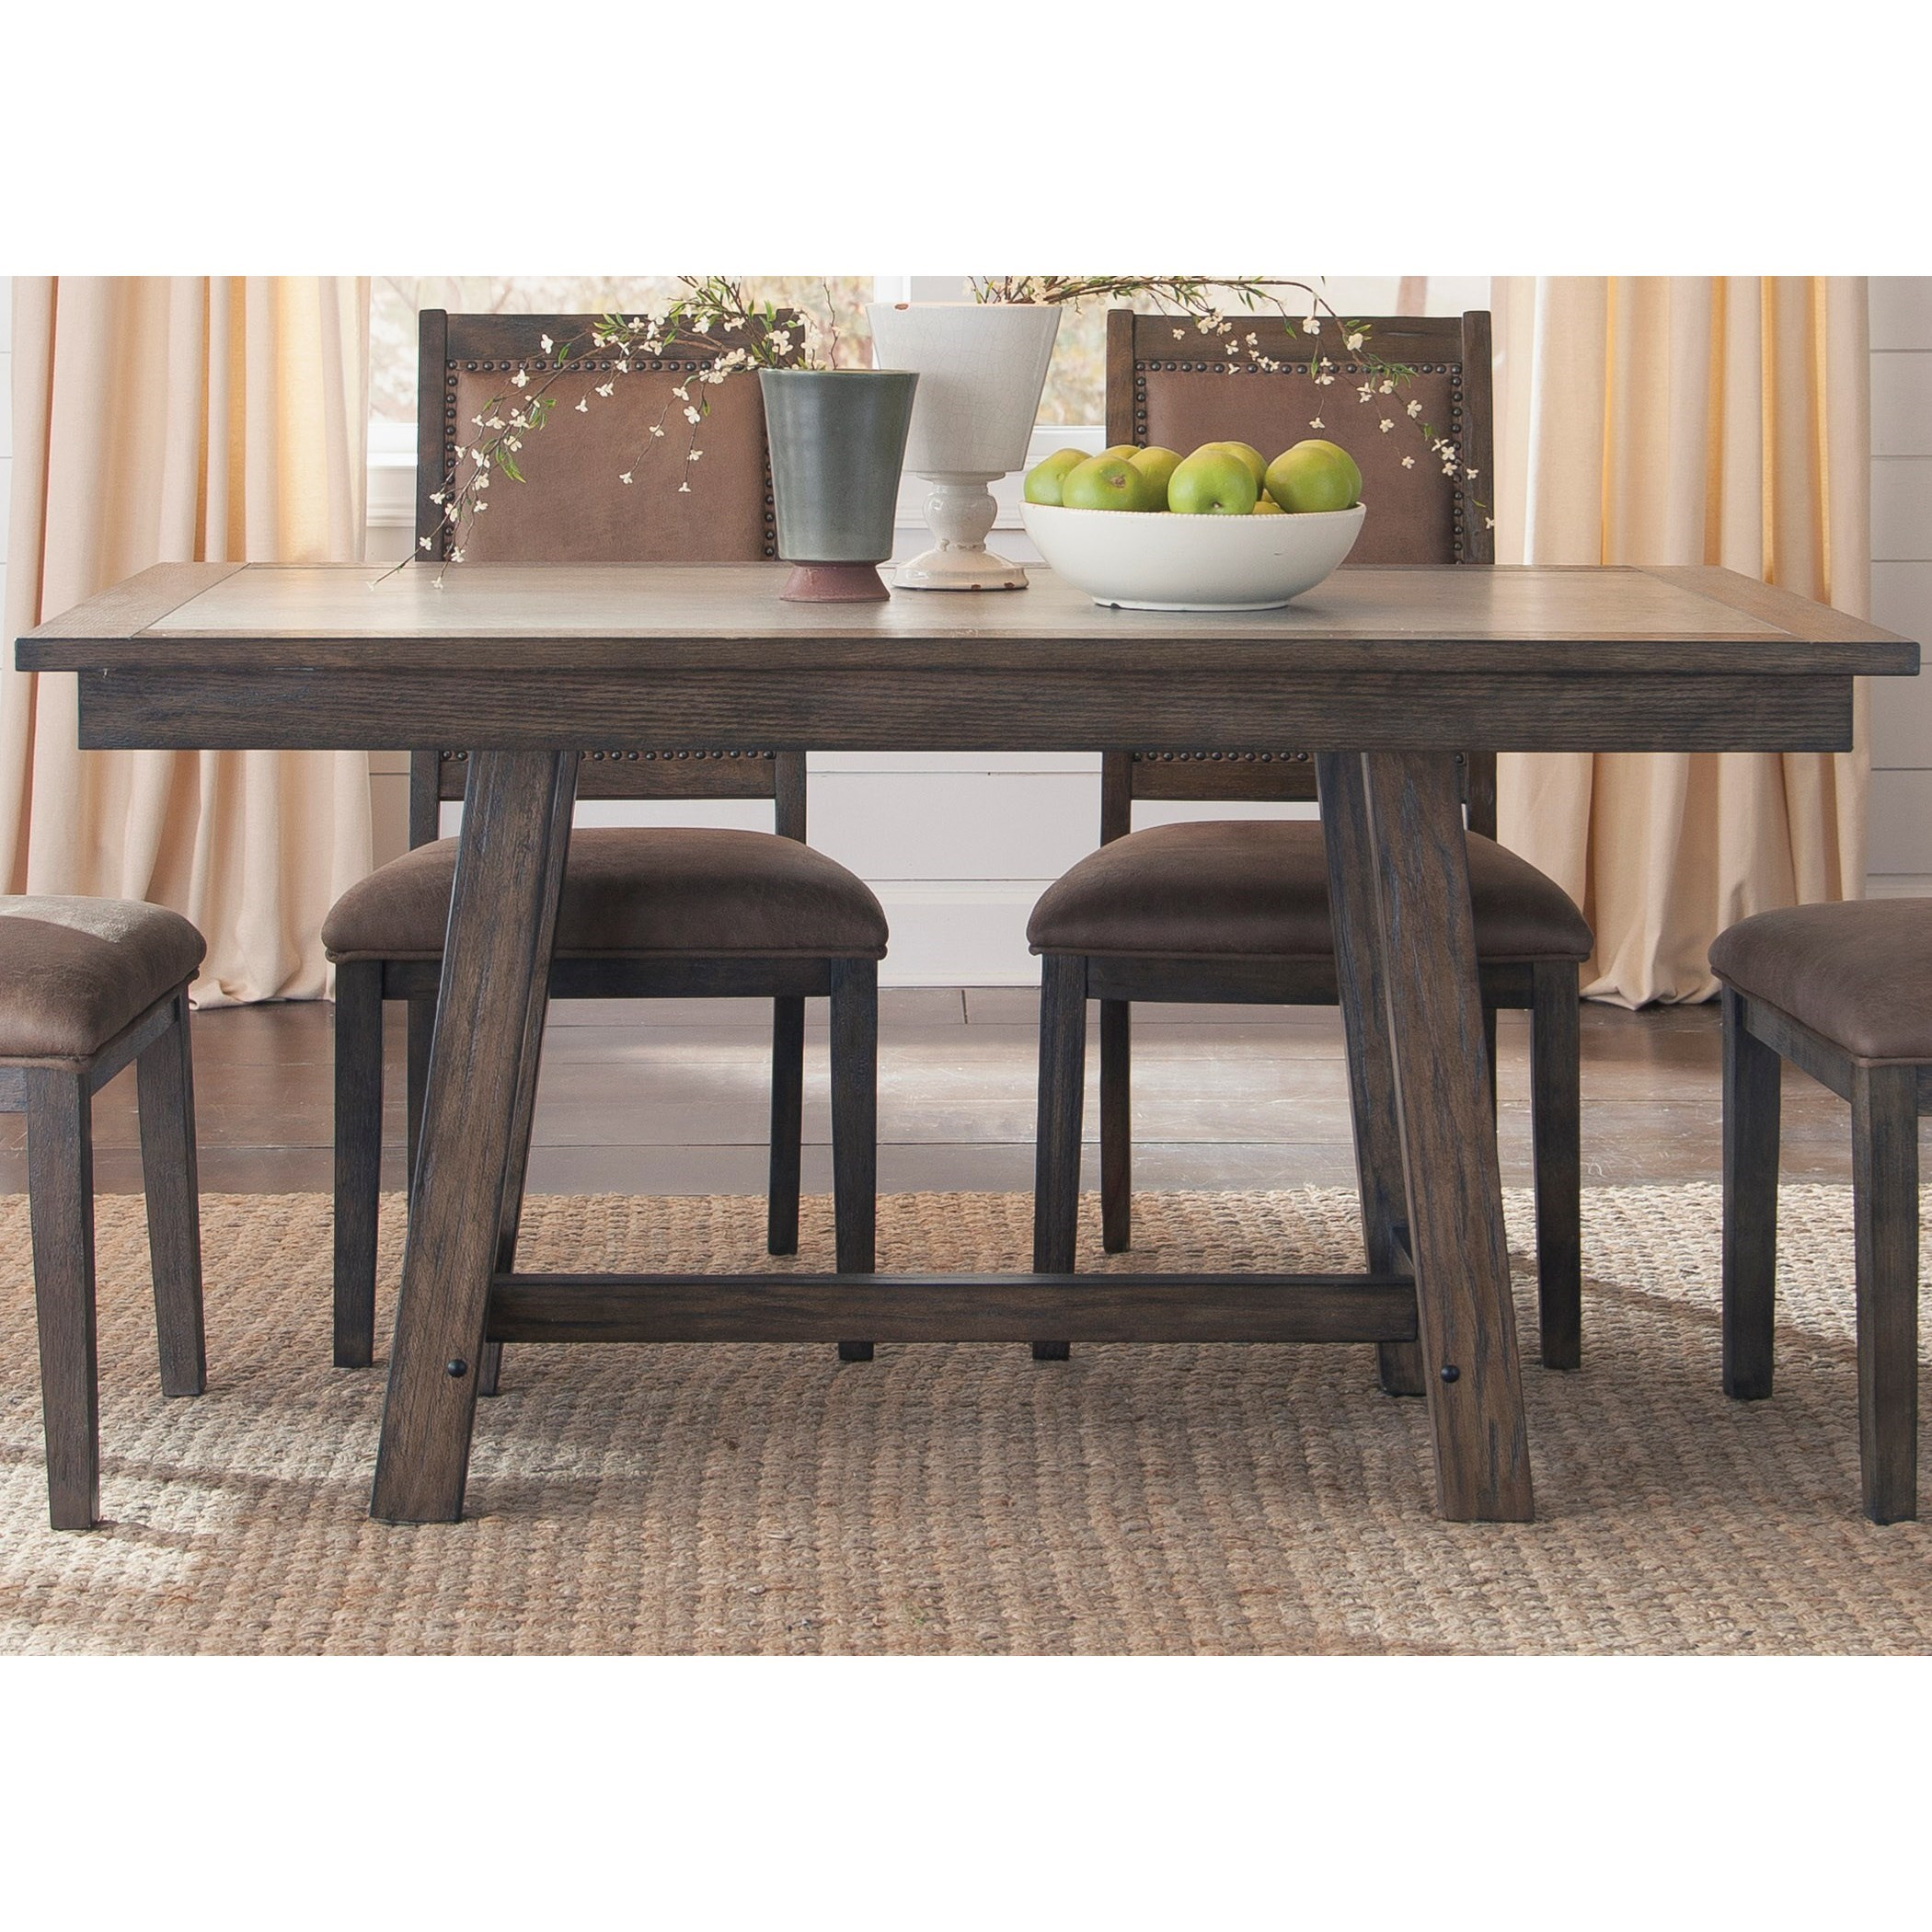 Liberty Furniture Stone Brook Trestle Table with Concrete Insert - Item Number: 466-T3660